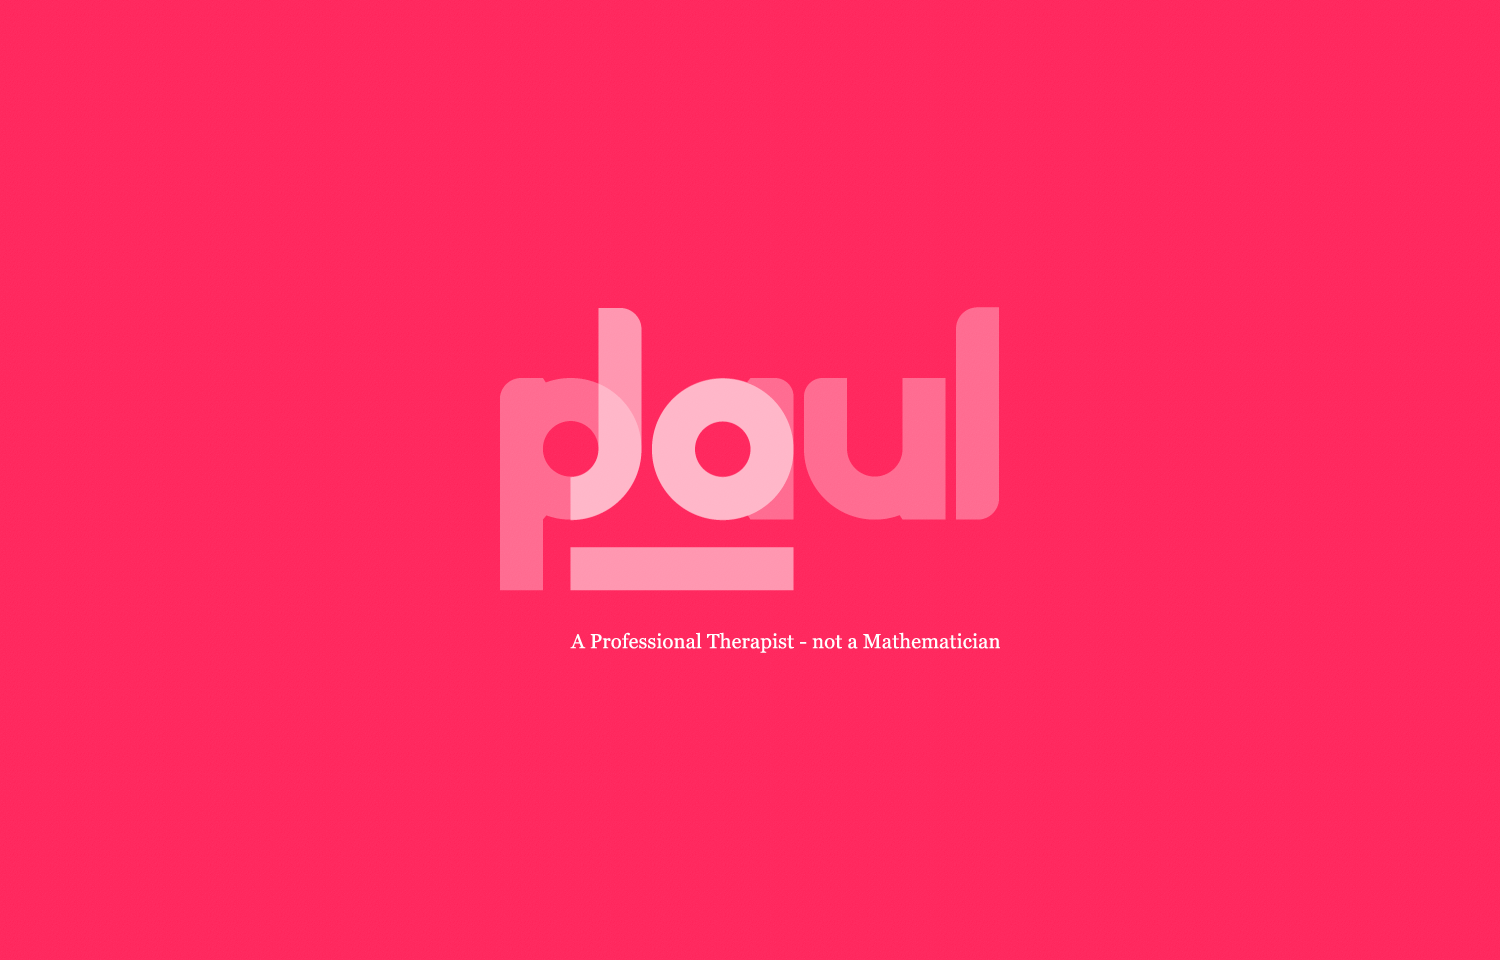 Logo design for registered professional and creative therapist, Jo Paul.